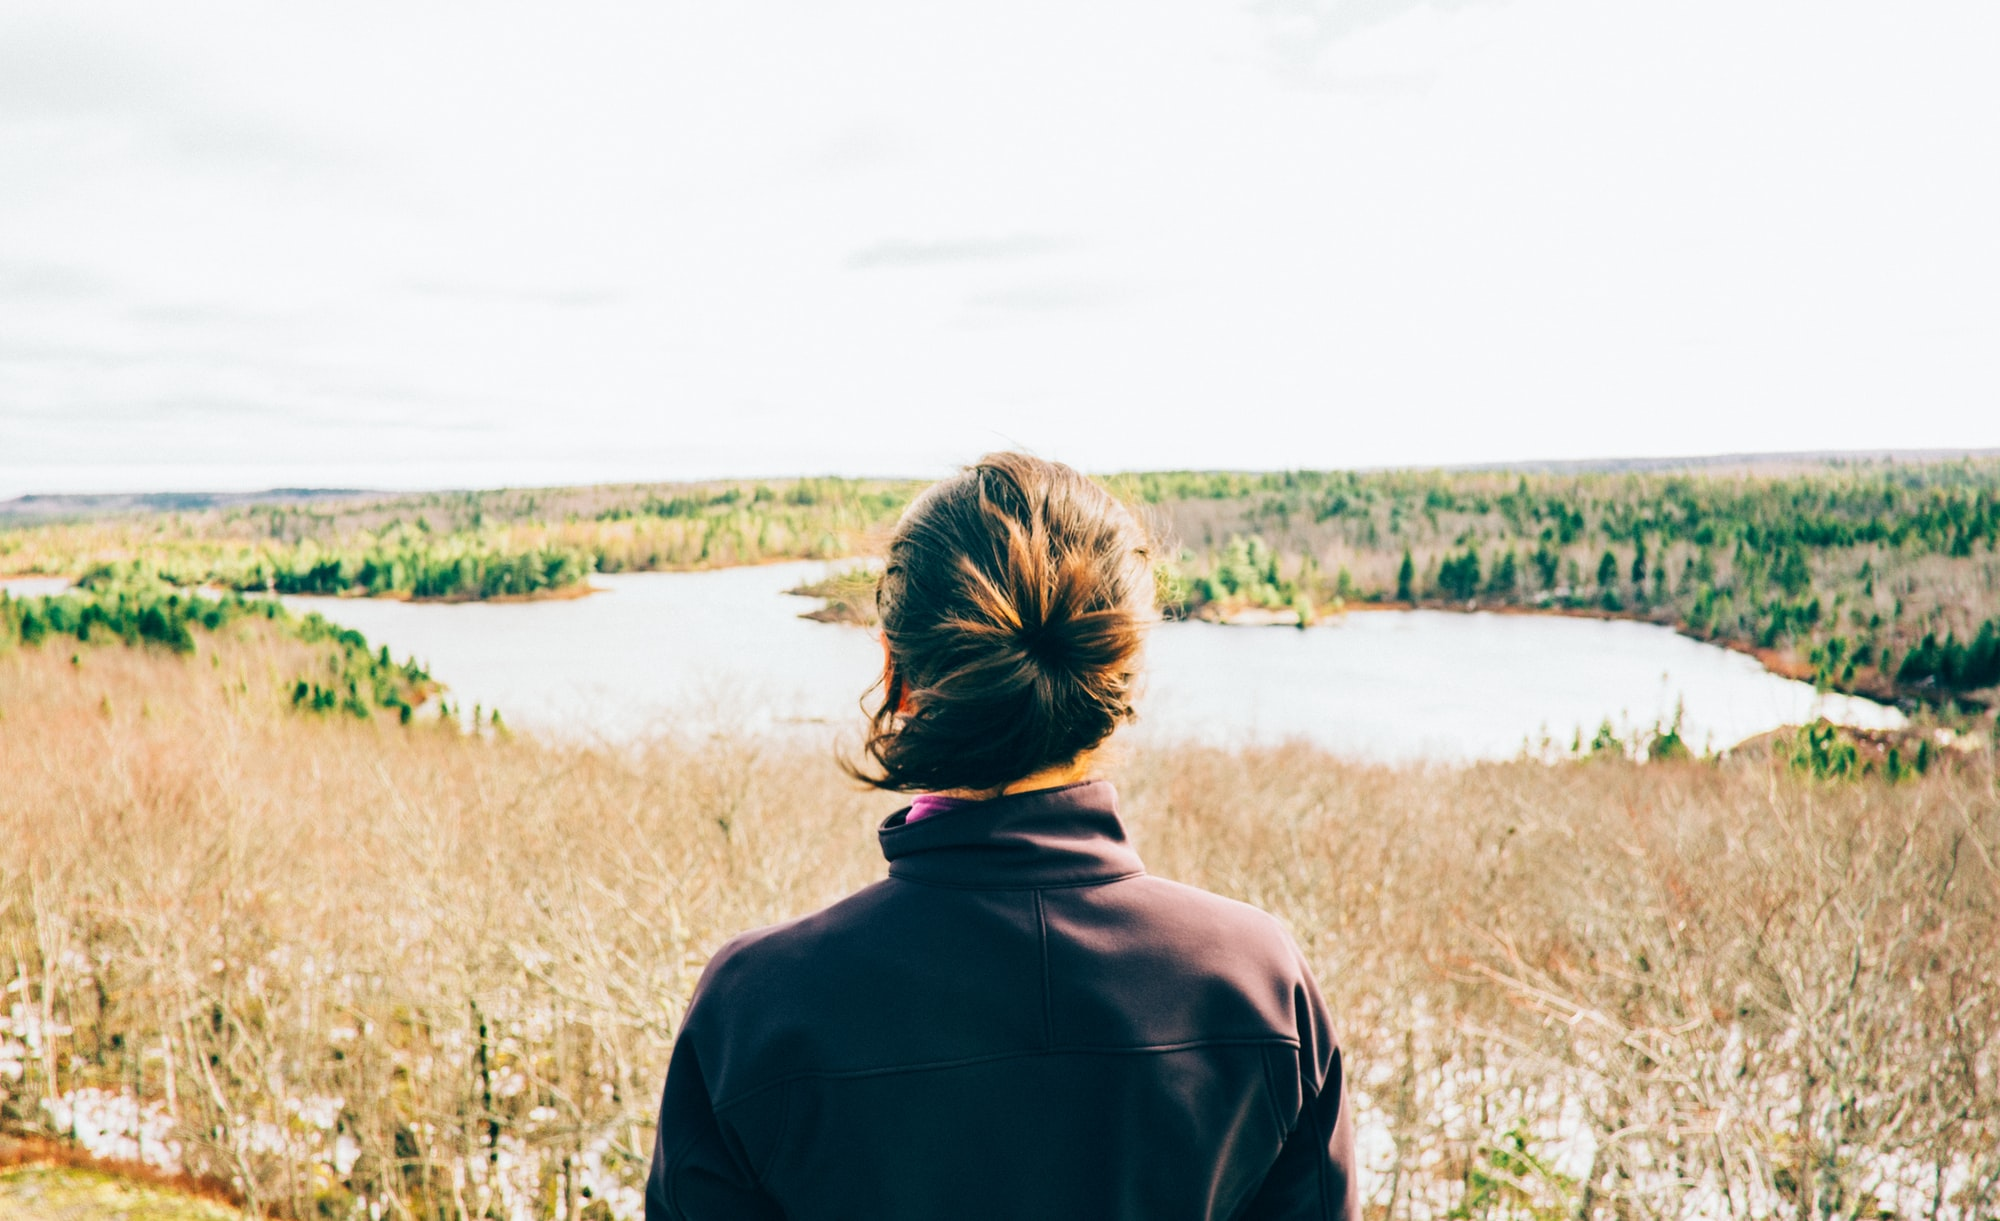 Back shot of a person with burgundy hair tied in a short ponytail, looking at a brown field.